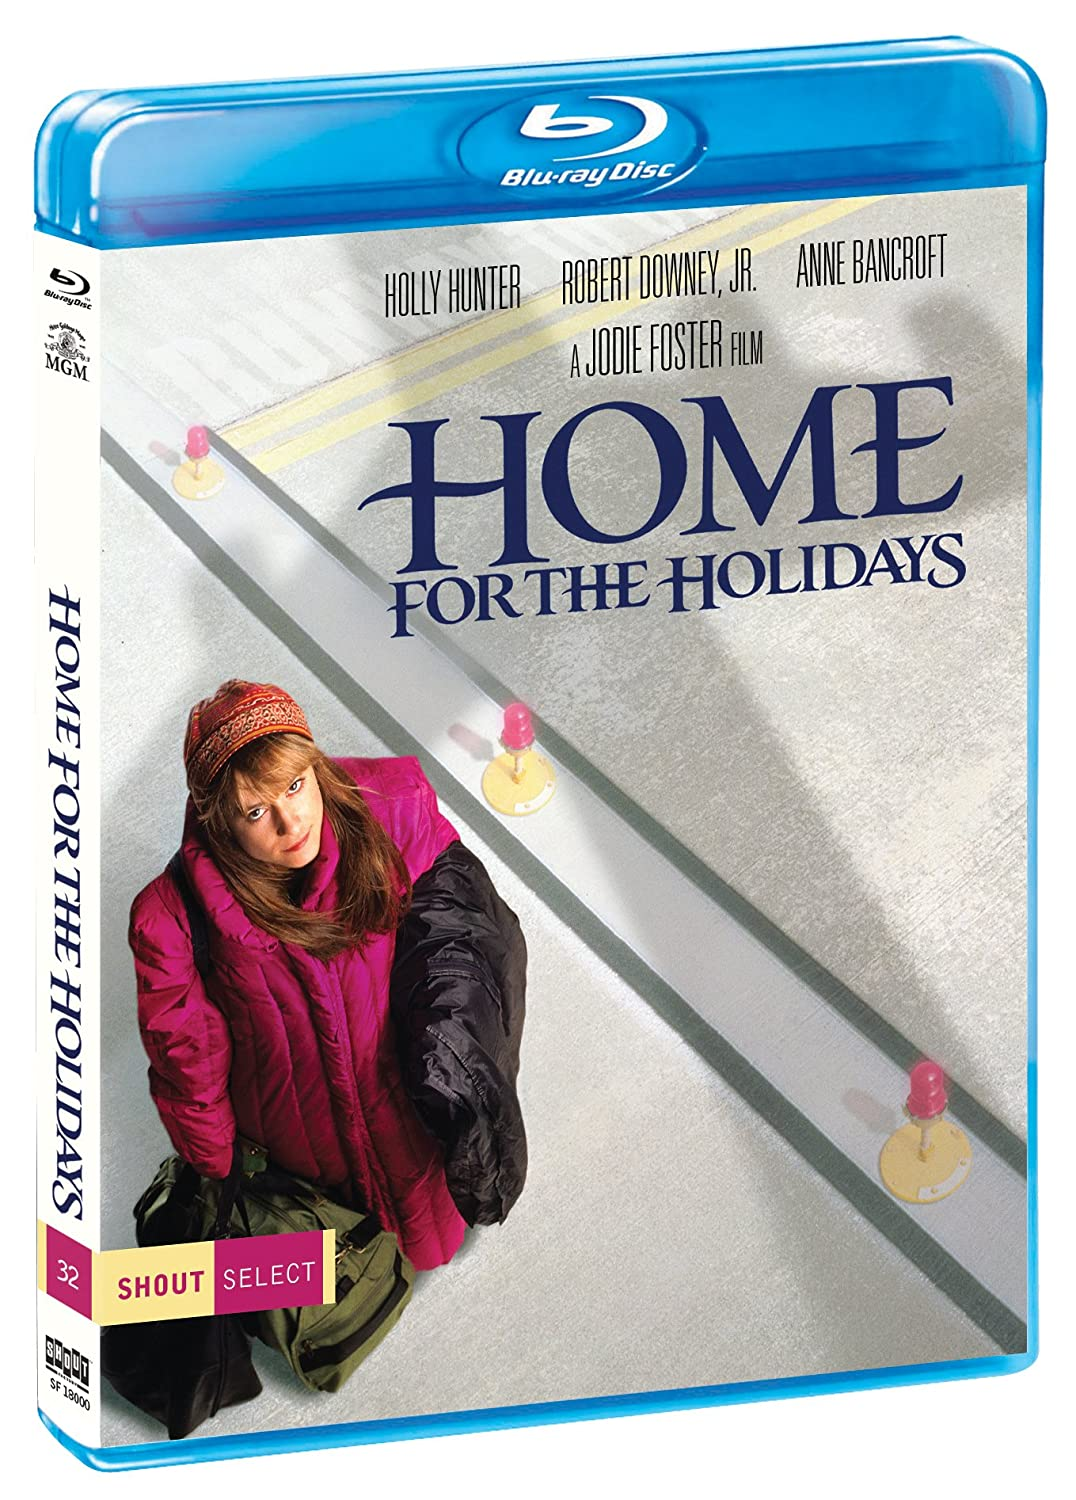 Amazon Com Home For The Holidays Blu Ray Holly Hunter Robert Downey Jr Anne Bancroft Claire Danes Jodie Foster Movies Tv